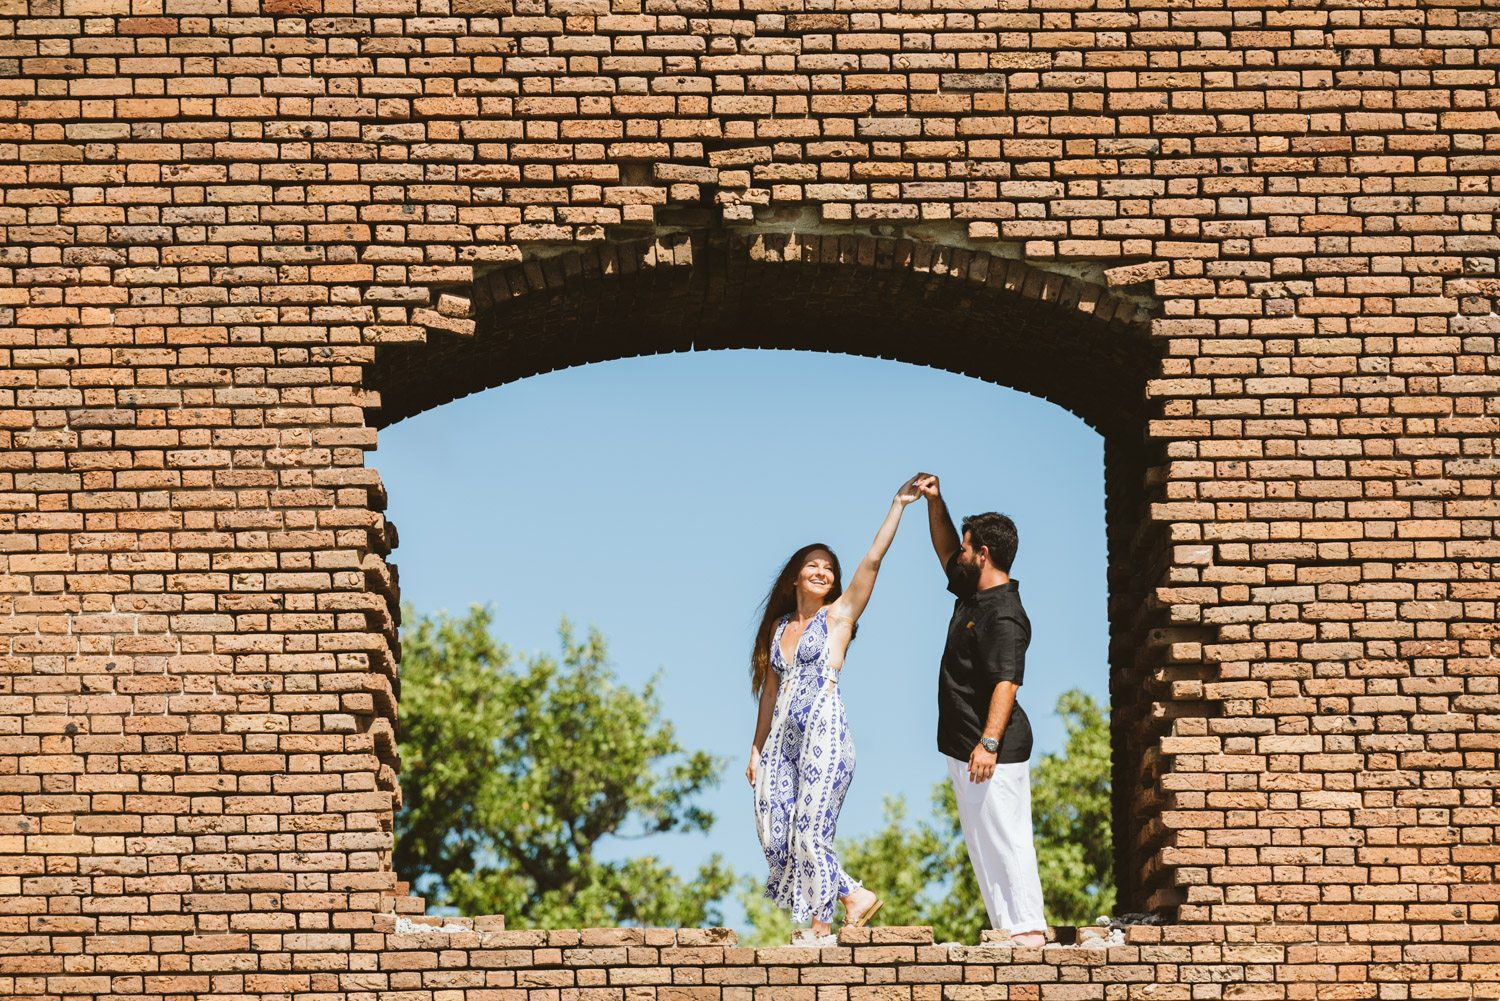 Katherine Oscar Engagement Photos Dry Tortugas 28 - Island Adventure Engagement Session - Dry Tortugas National Park and Fort Jefferson